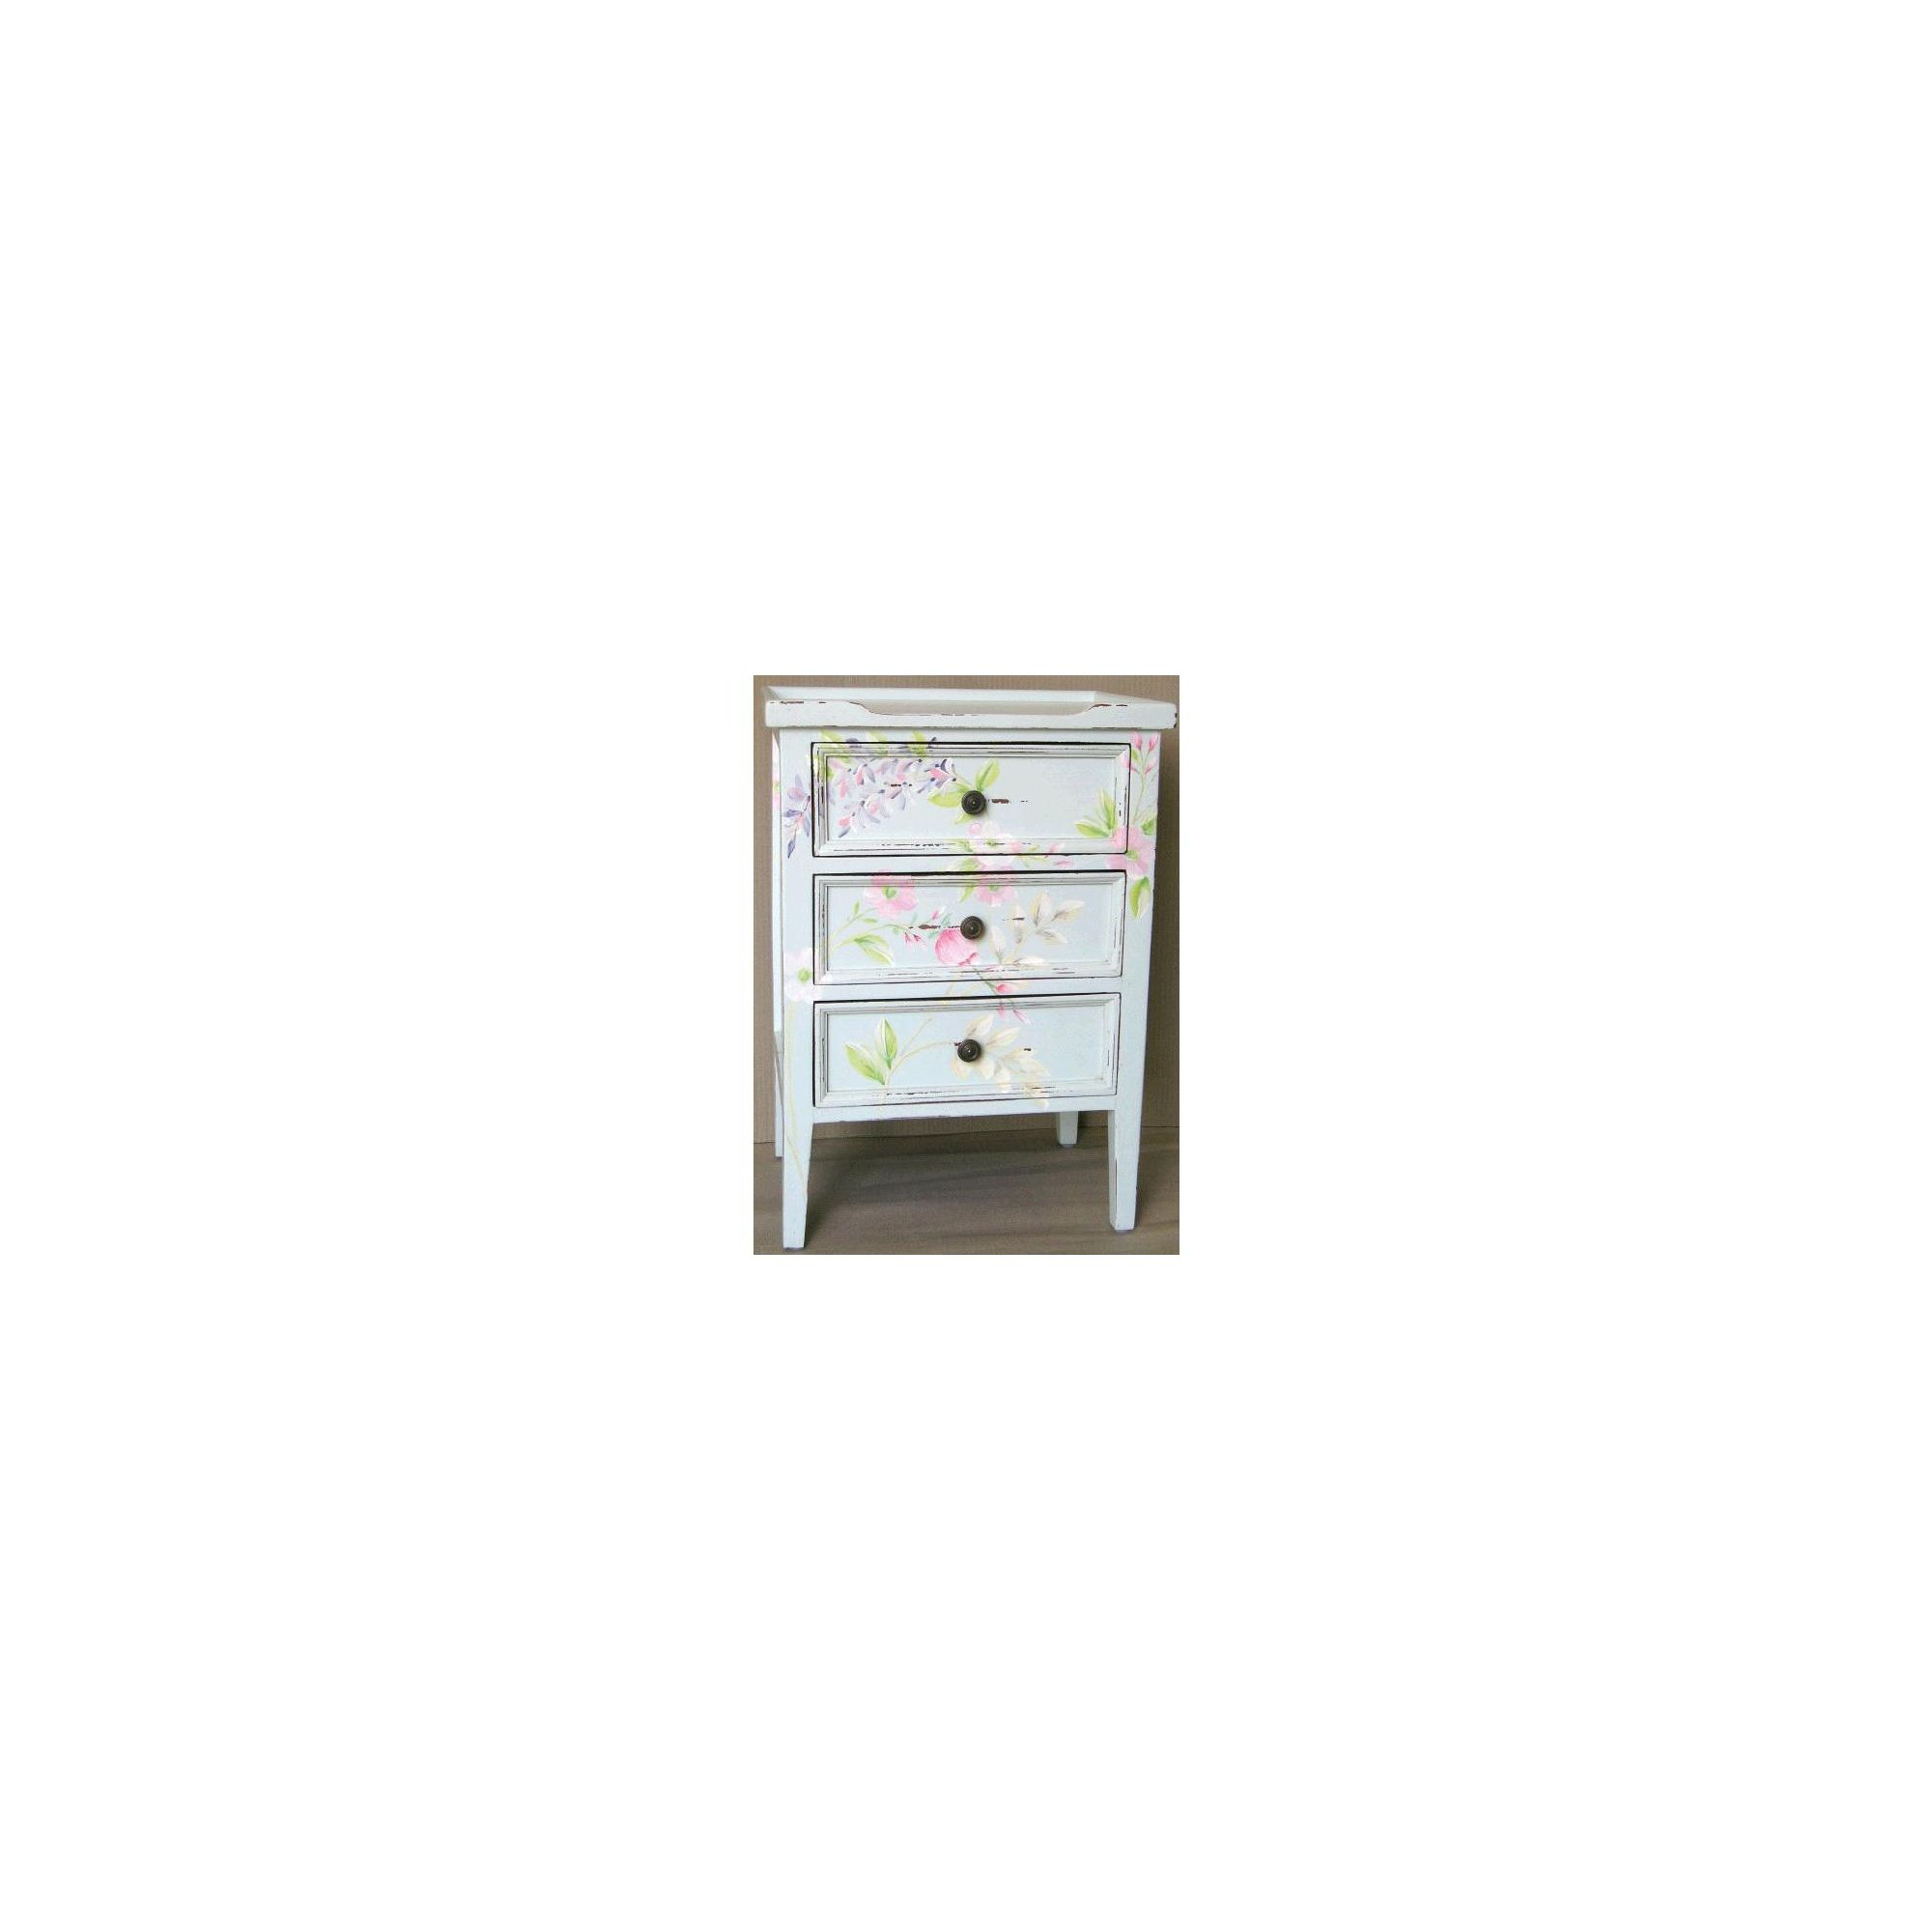 Lock stock and barrel Shell Eton 3 Drawer Side Table - Pastel Flowers at Tescos Direct